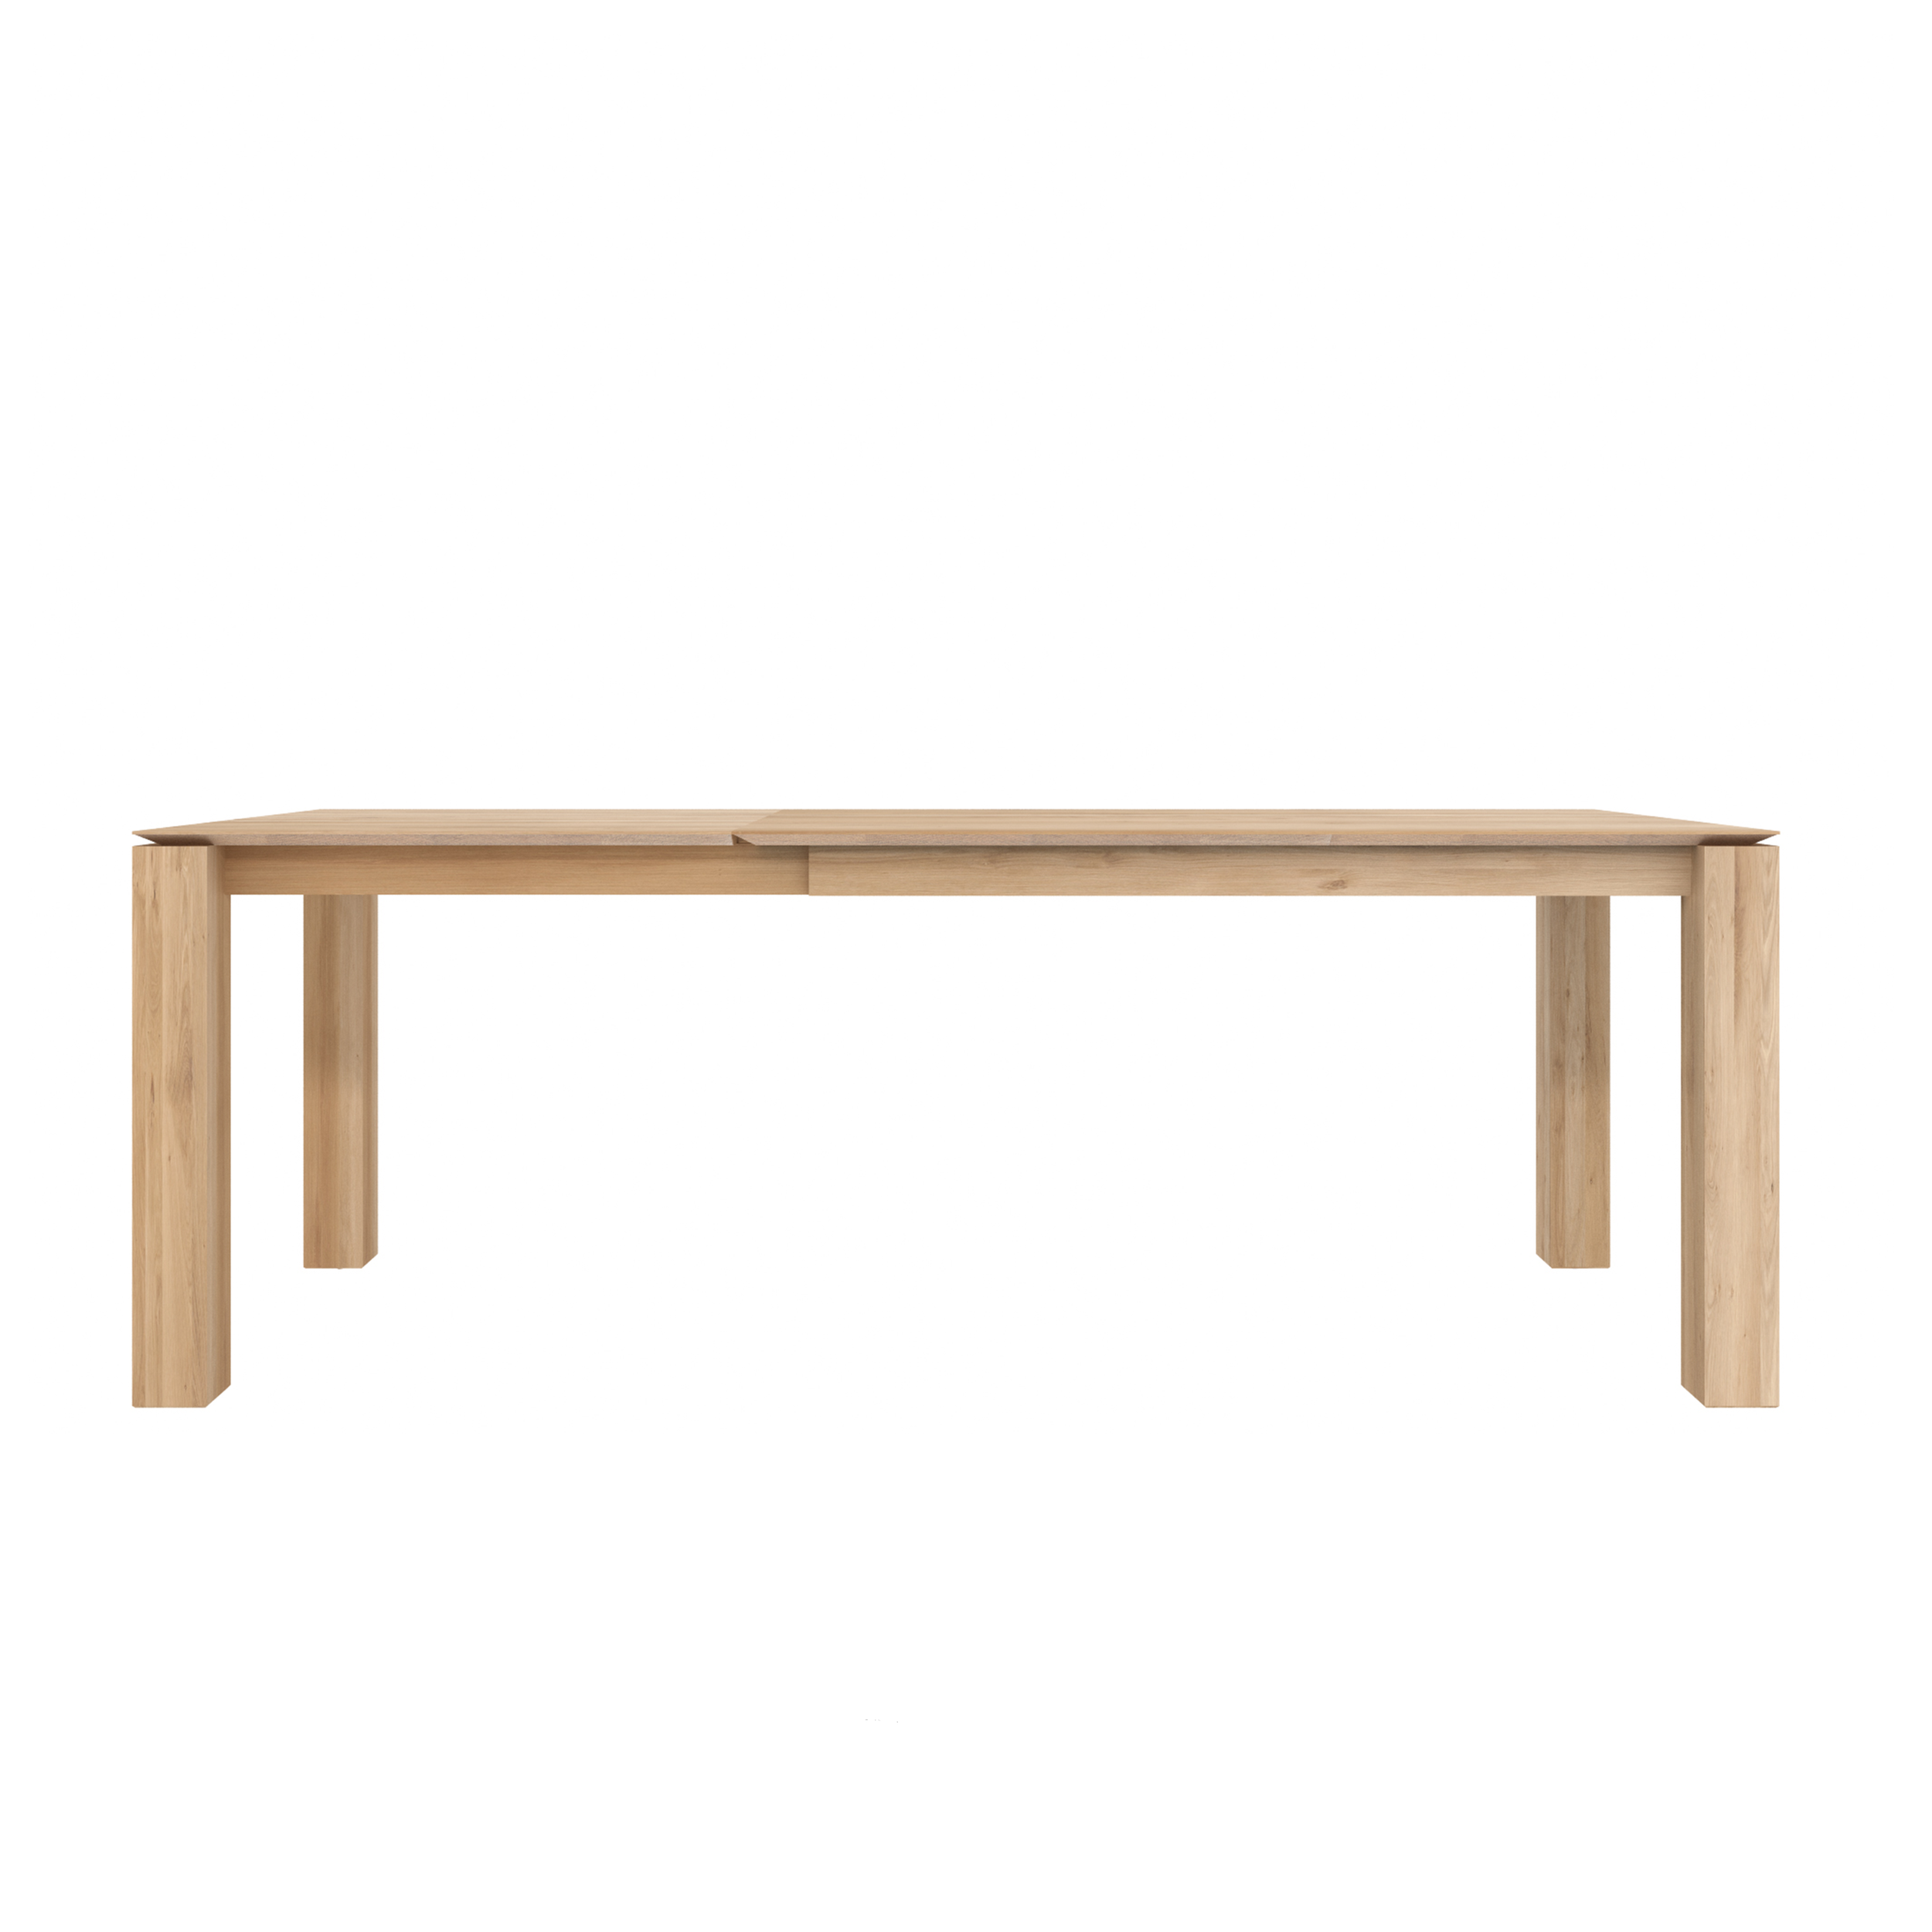 51942 Slice extendable dining table - Oak.jpg.png